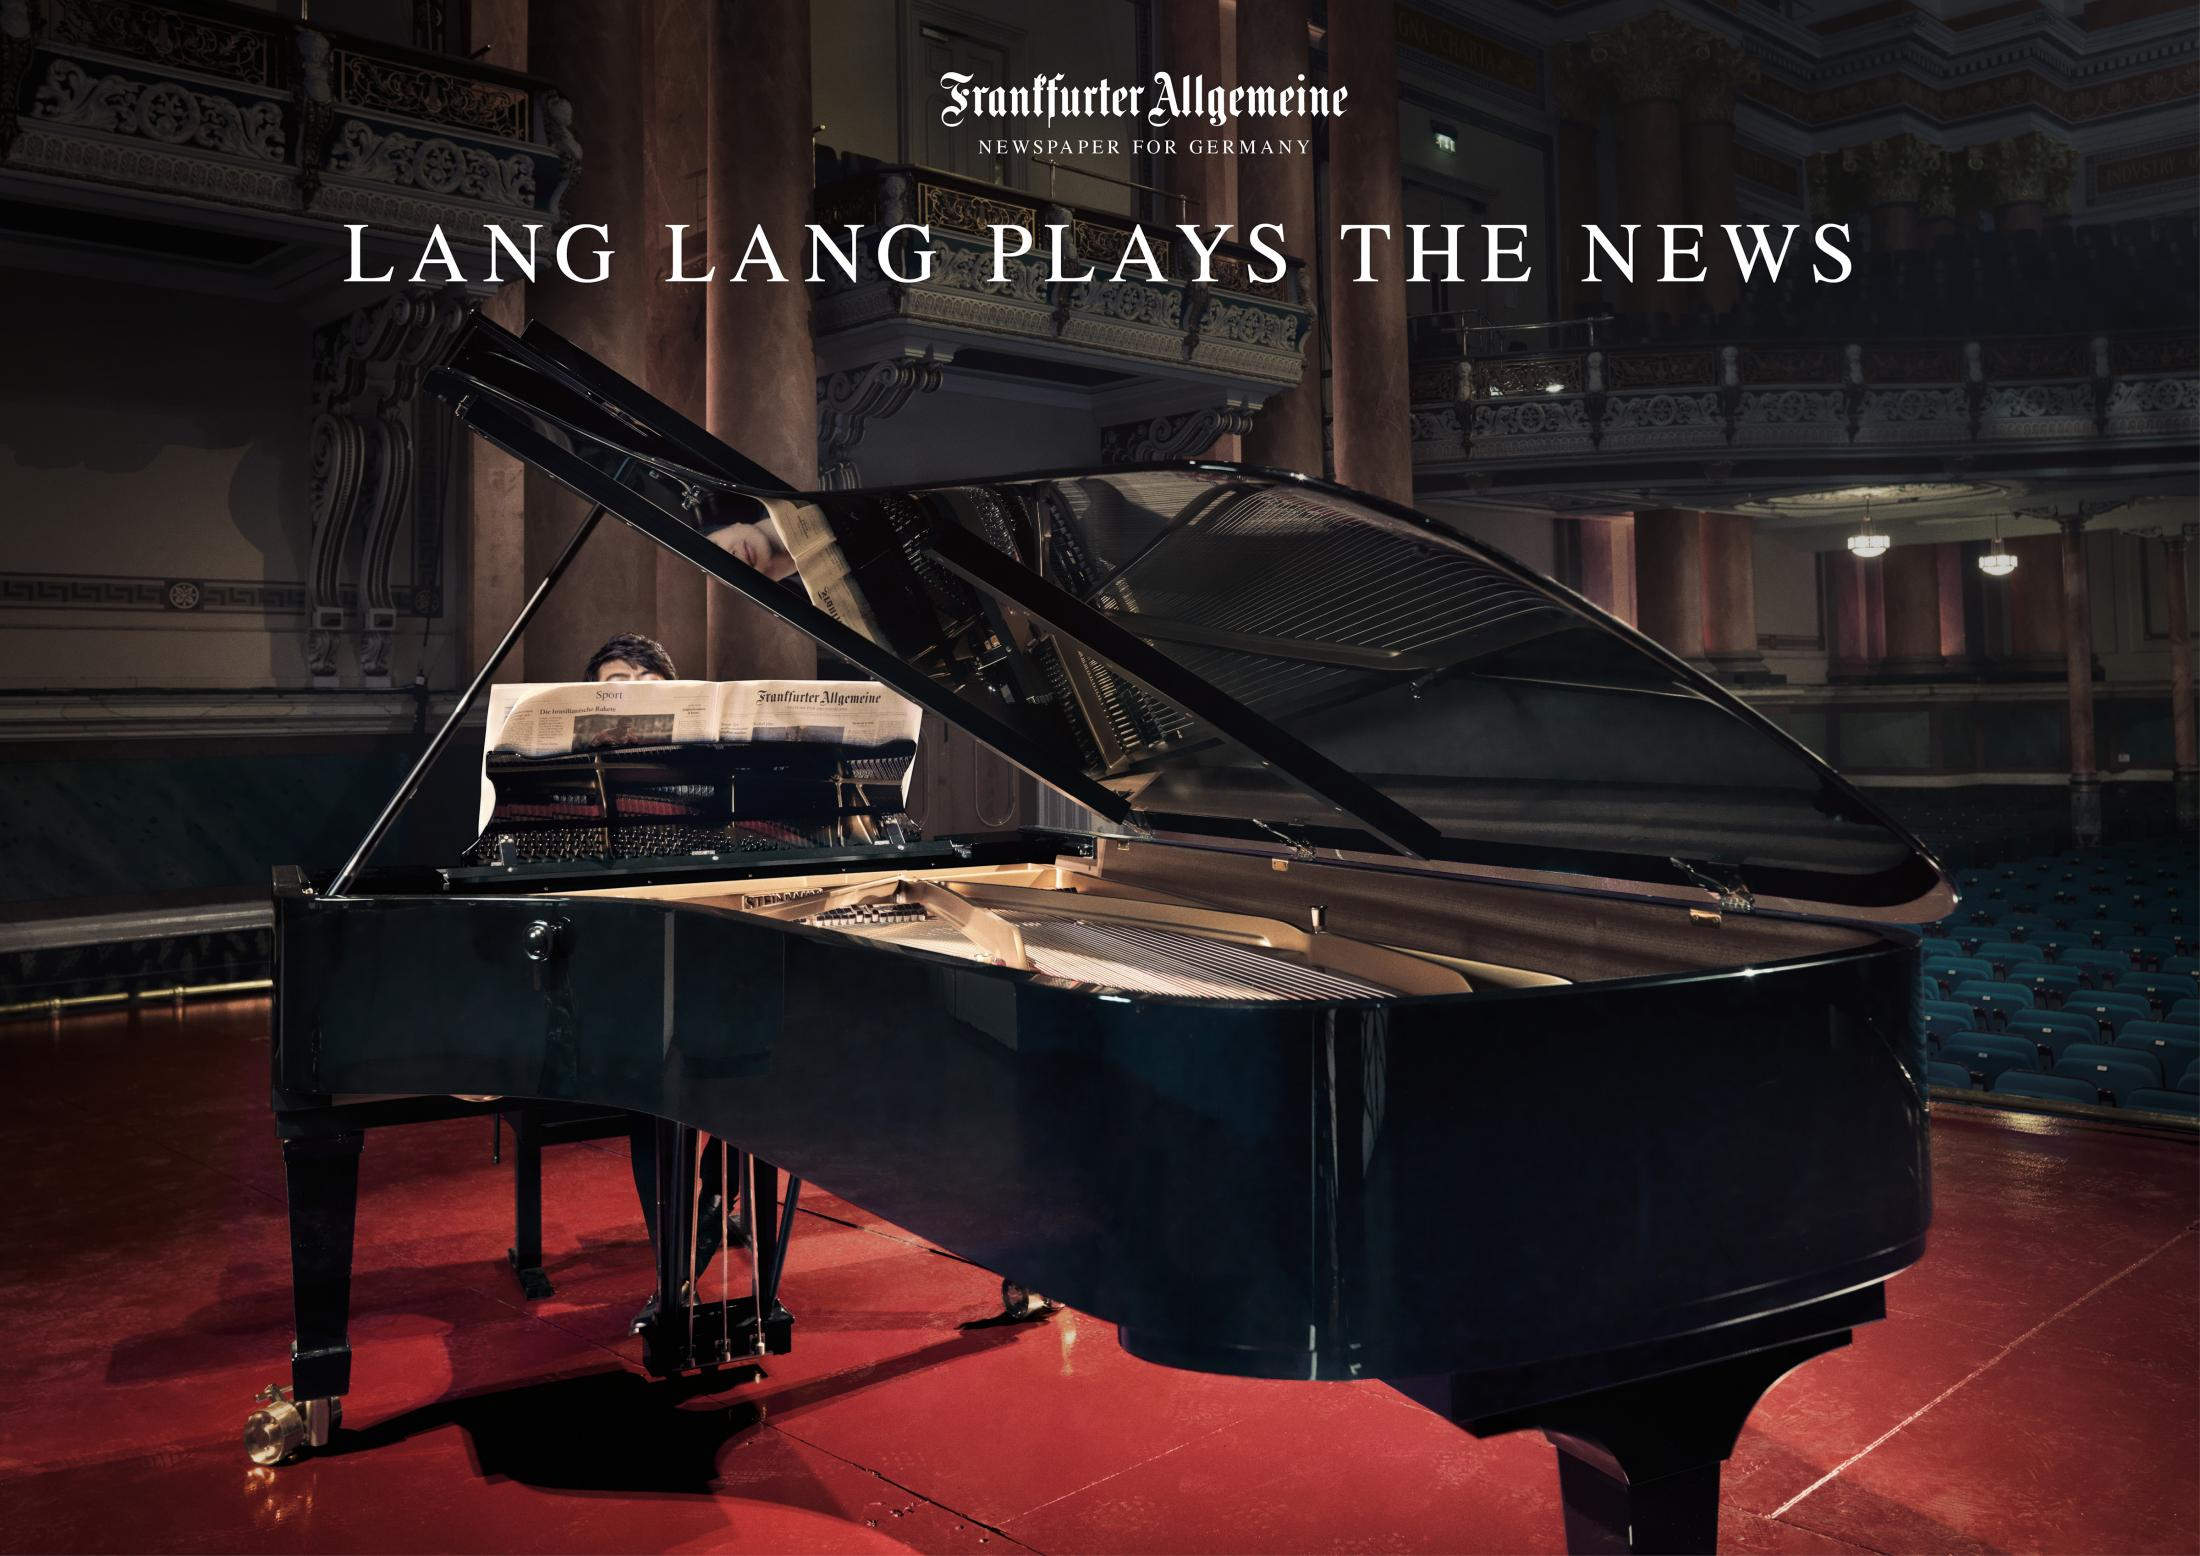 Thumbnail for Lang Lang plays the F.A.Z. - Germany's leading newspaper